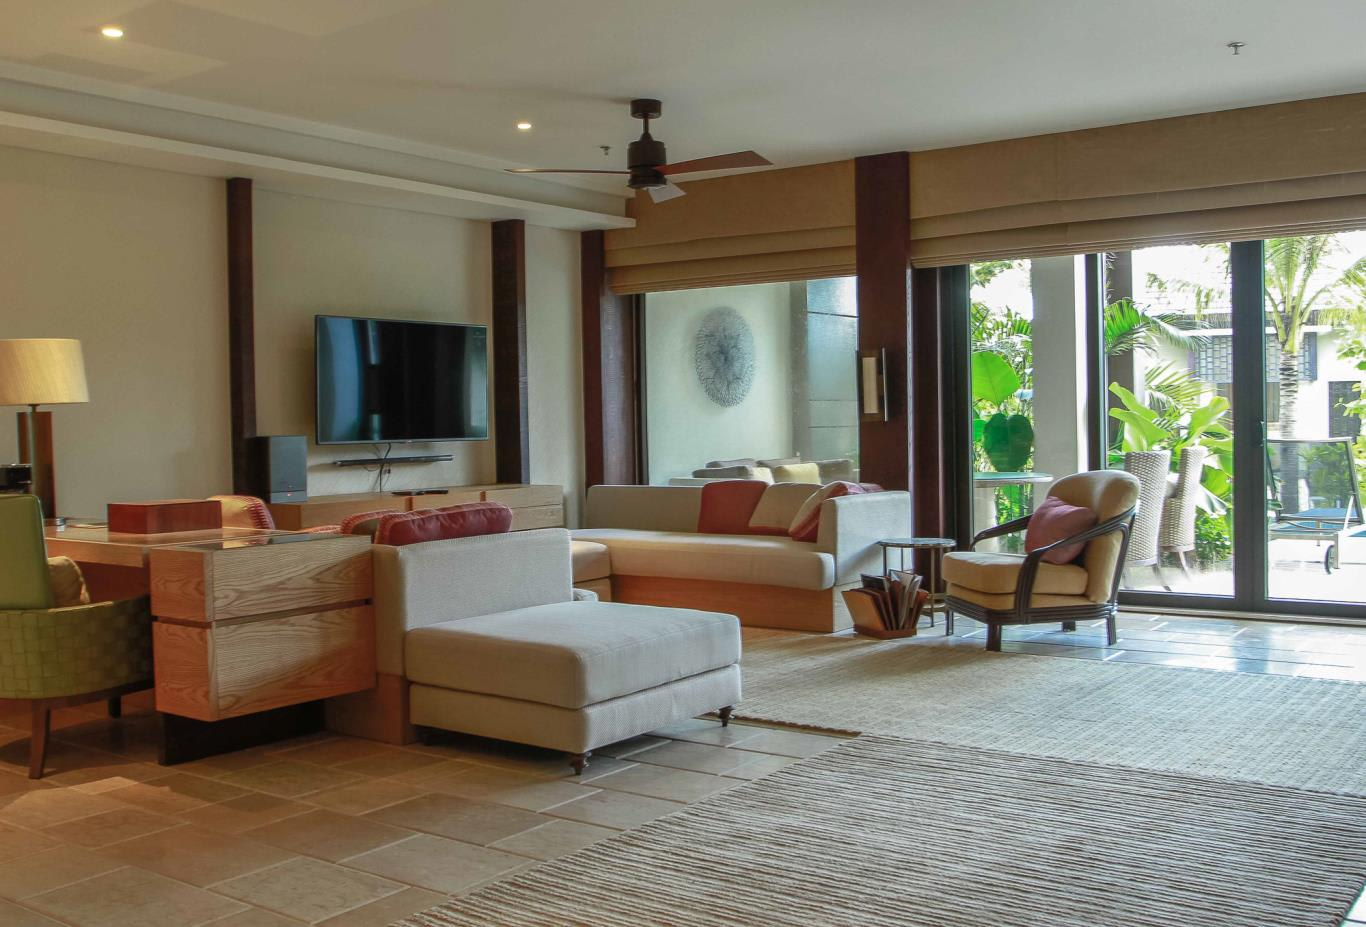 The Ritz-Carlton Suite (2 BR)